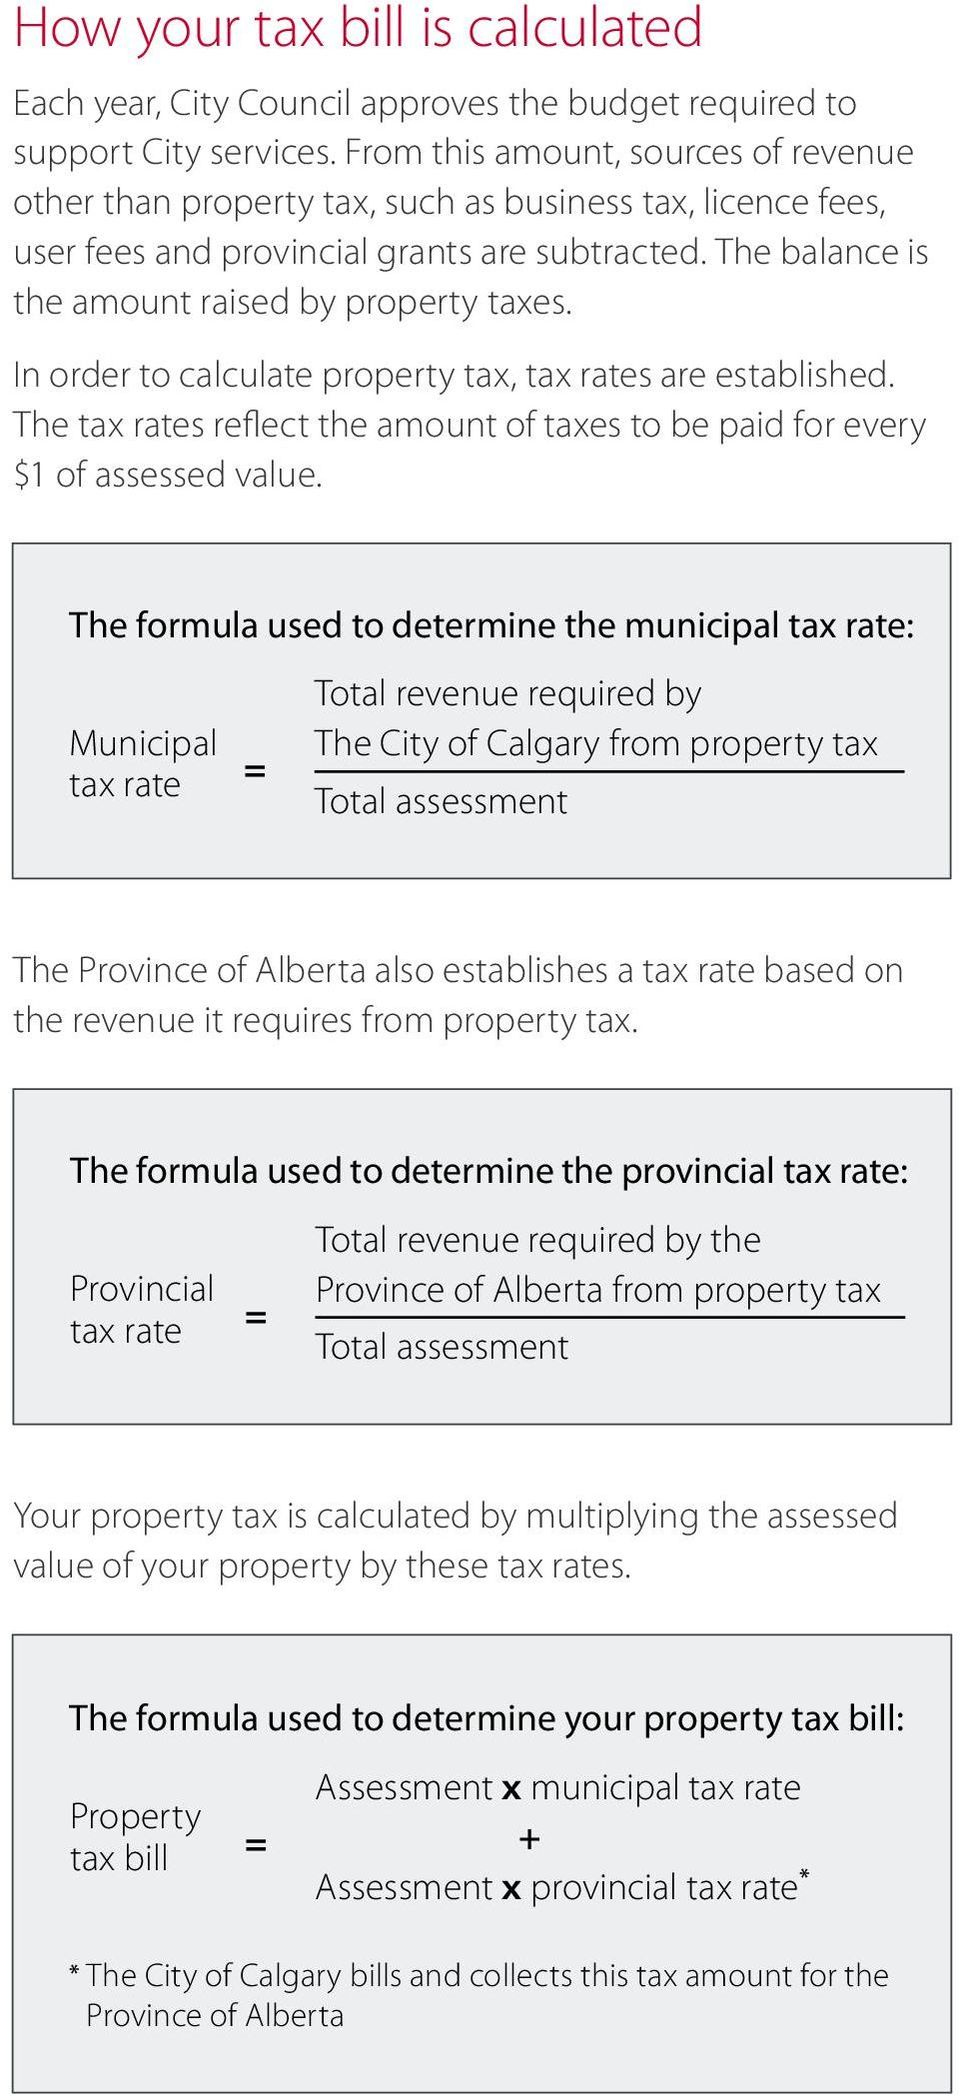 In order to calculate property tax, tax rates are established. The tax rates reflect the amount of taxes to be paid for every $1 of assessed value.